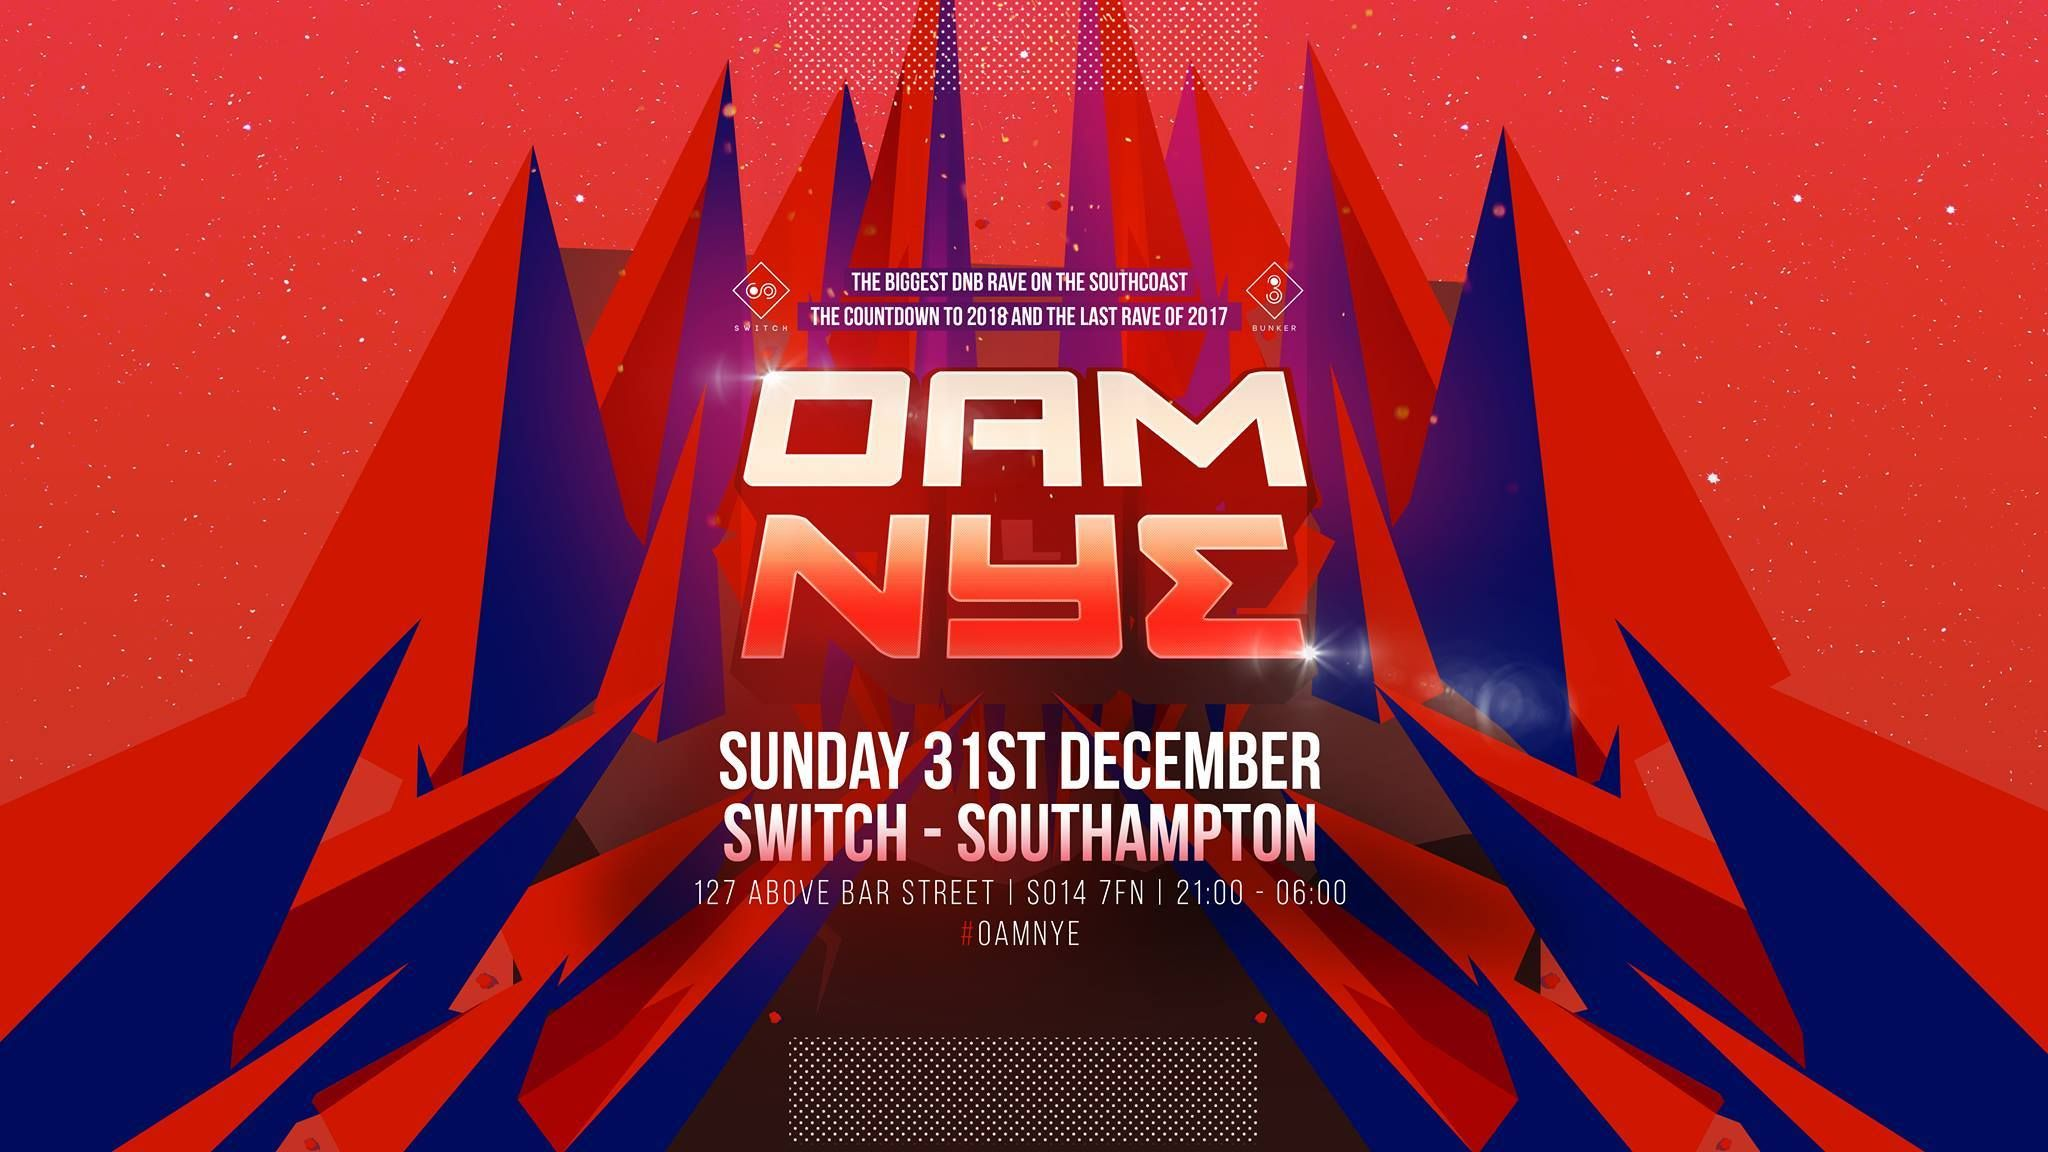 .@Switchsoton is the venue for one last rave this year. Who's in? Final few tix remaining https://t.co/W8dsmSF5ki https://t.co/BpYCcrfuTD